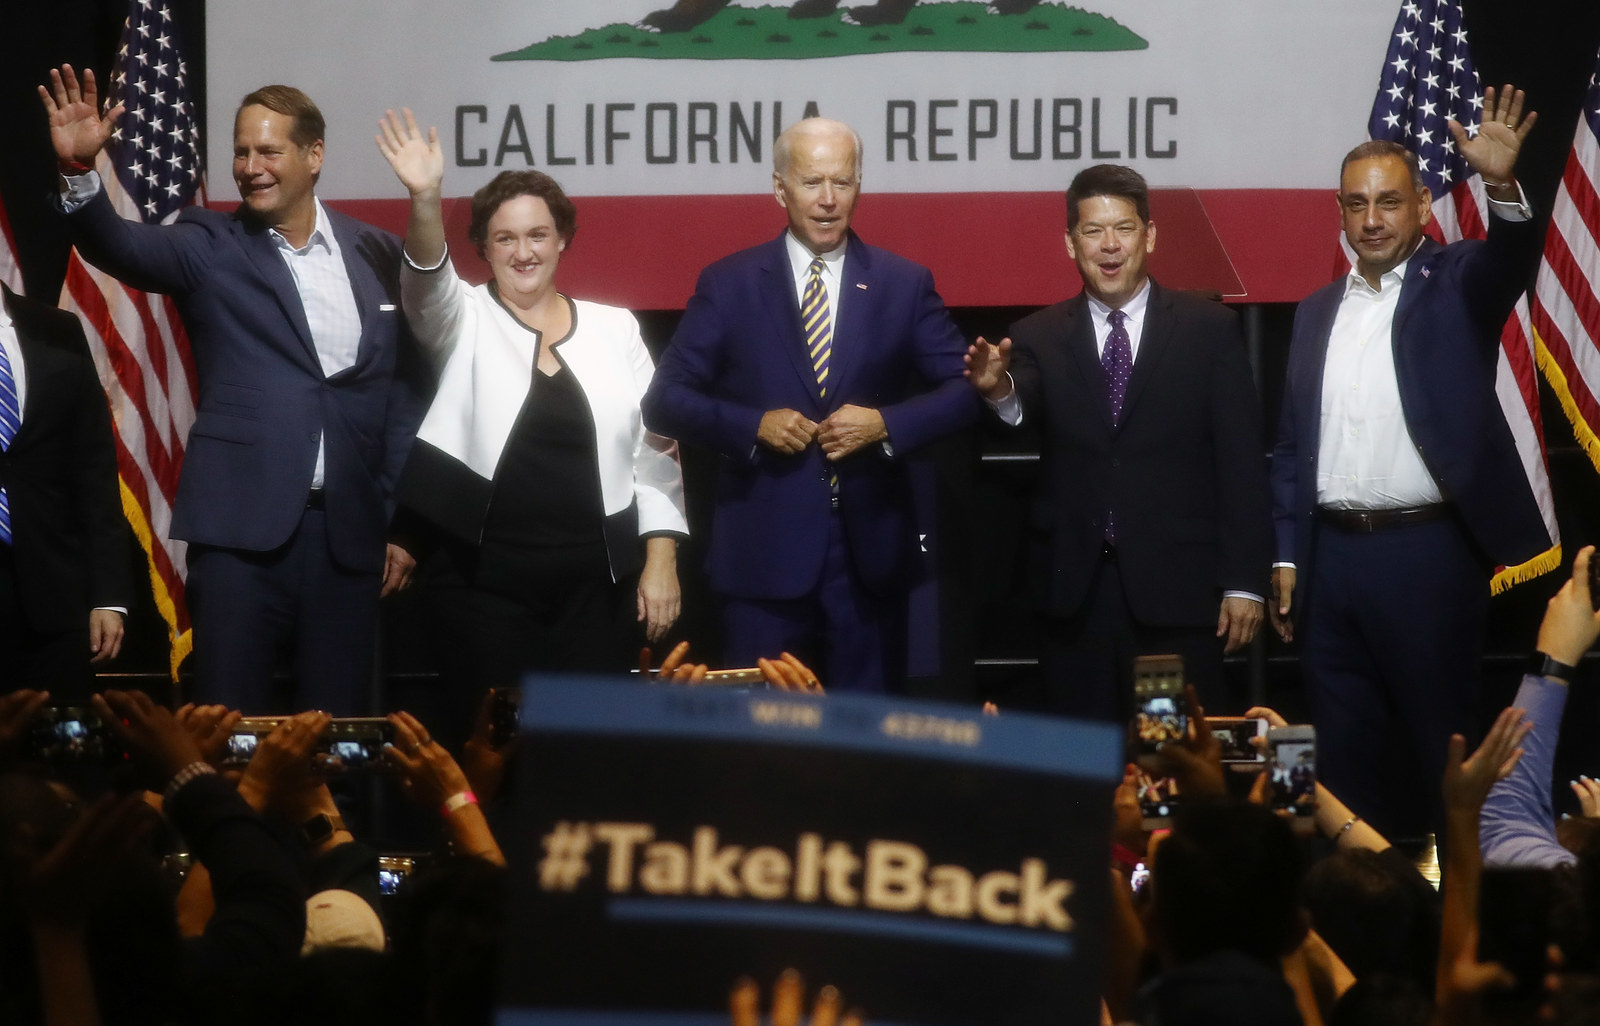 Former Vice President Joe Biden campaigns with Democratic candidates Harley Rouda, Katie Porter, TJ Cox, and Gil Cisneros. All four won their congressional races after three trailed their Republican counterparts on election night.